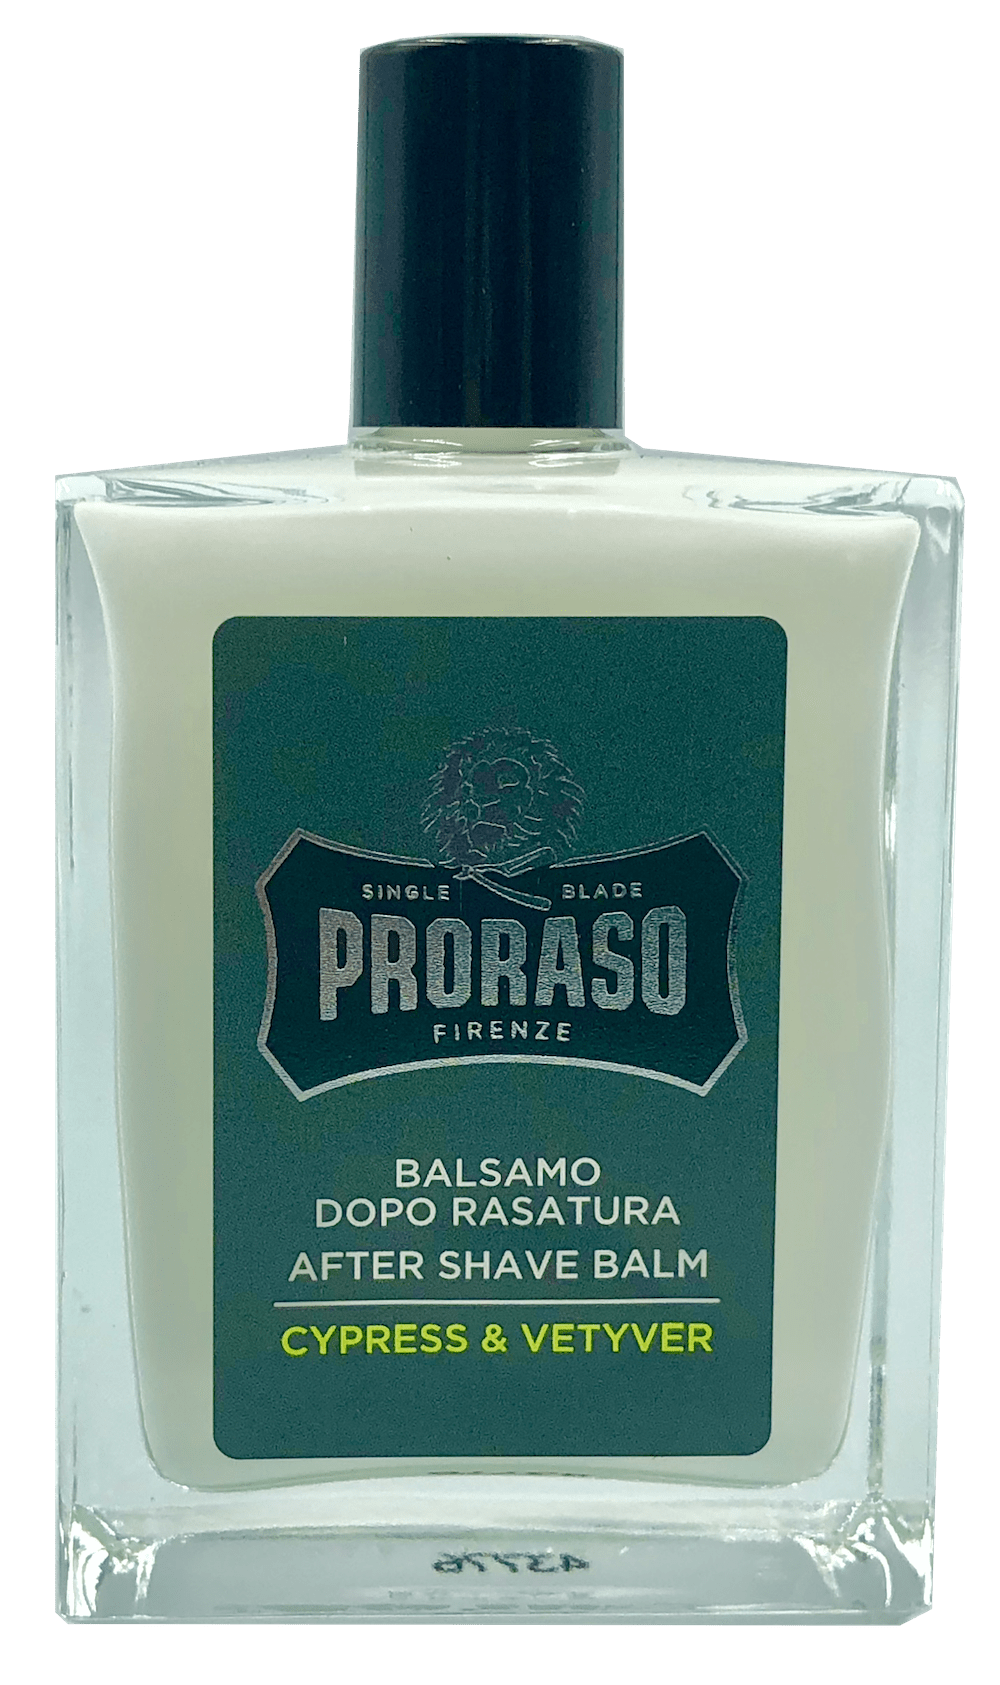 After Shave Balm (Cypress & Vetyver) | S4 Supplies